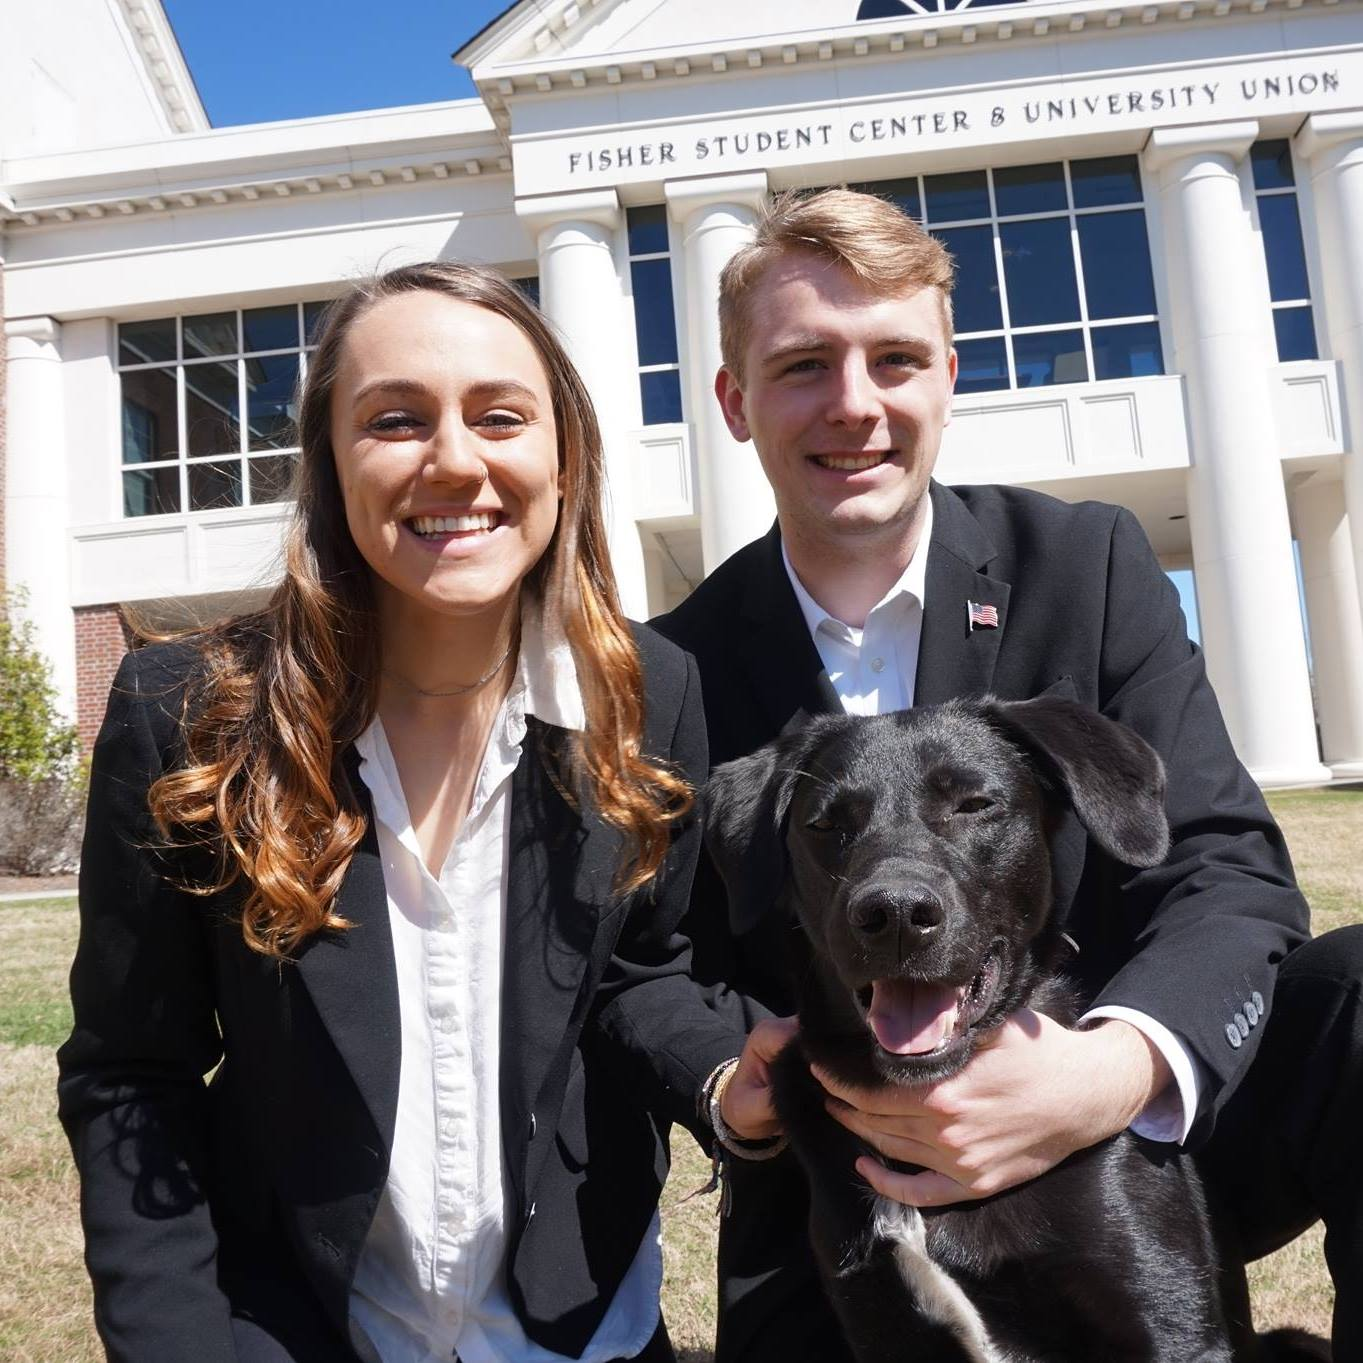 Tillet (right) and Brethen (left) have been elected next year's SGA preident and vice president.